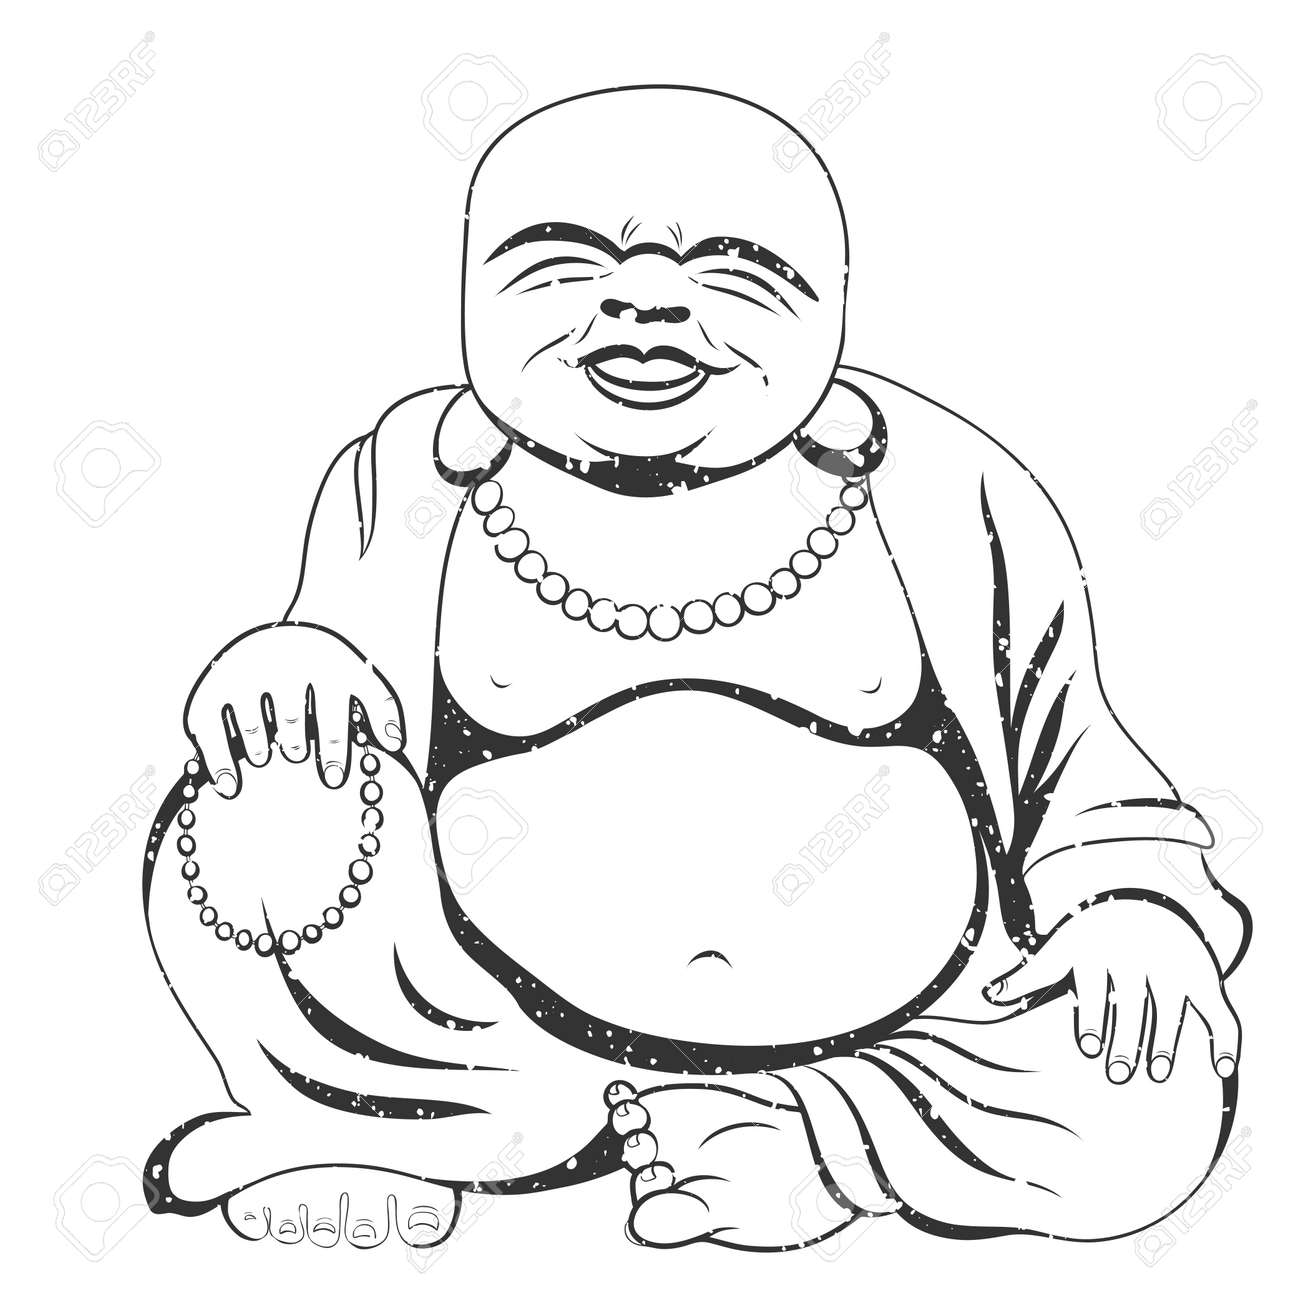 Laughing Buddha or Hotei sitting. Vector illustration. - 69253513